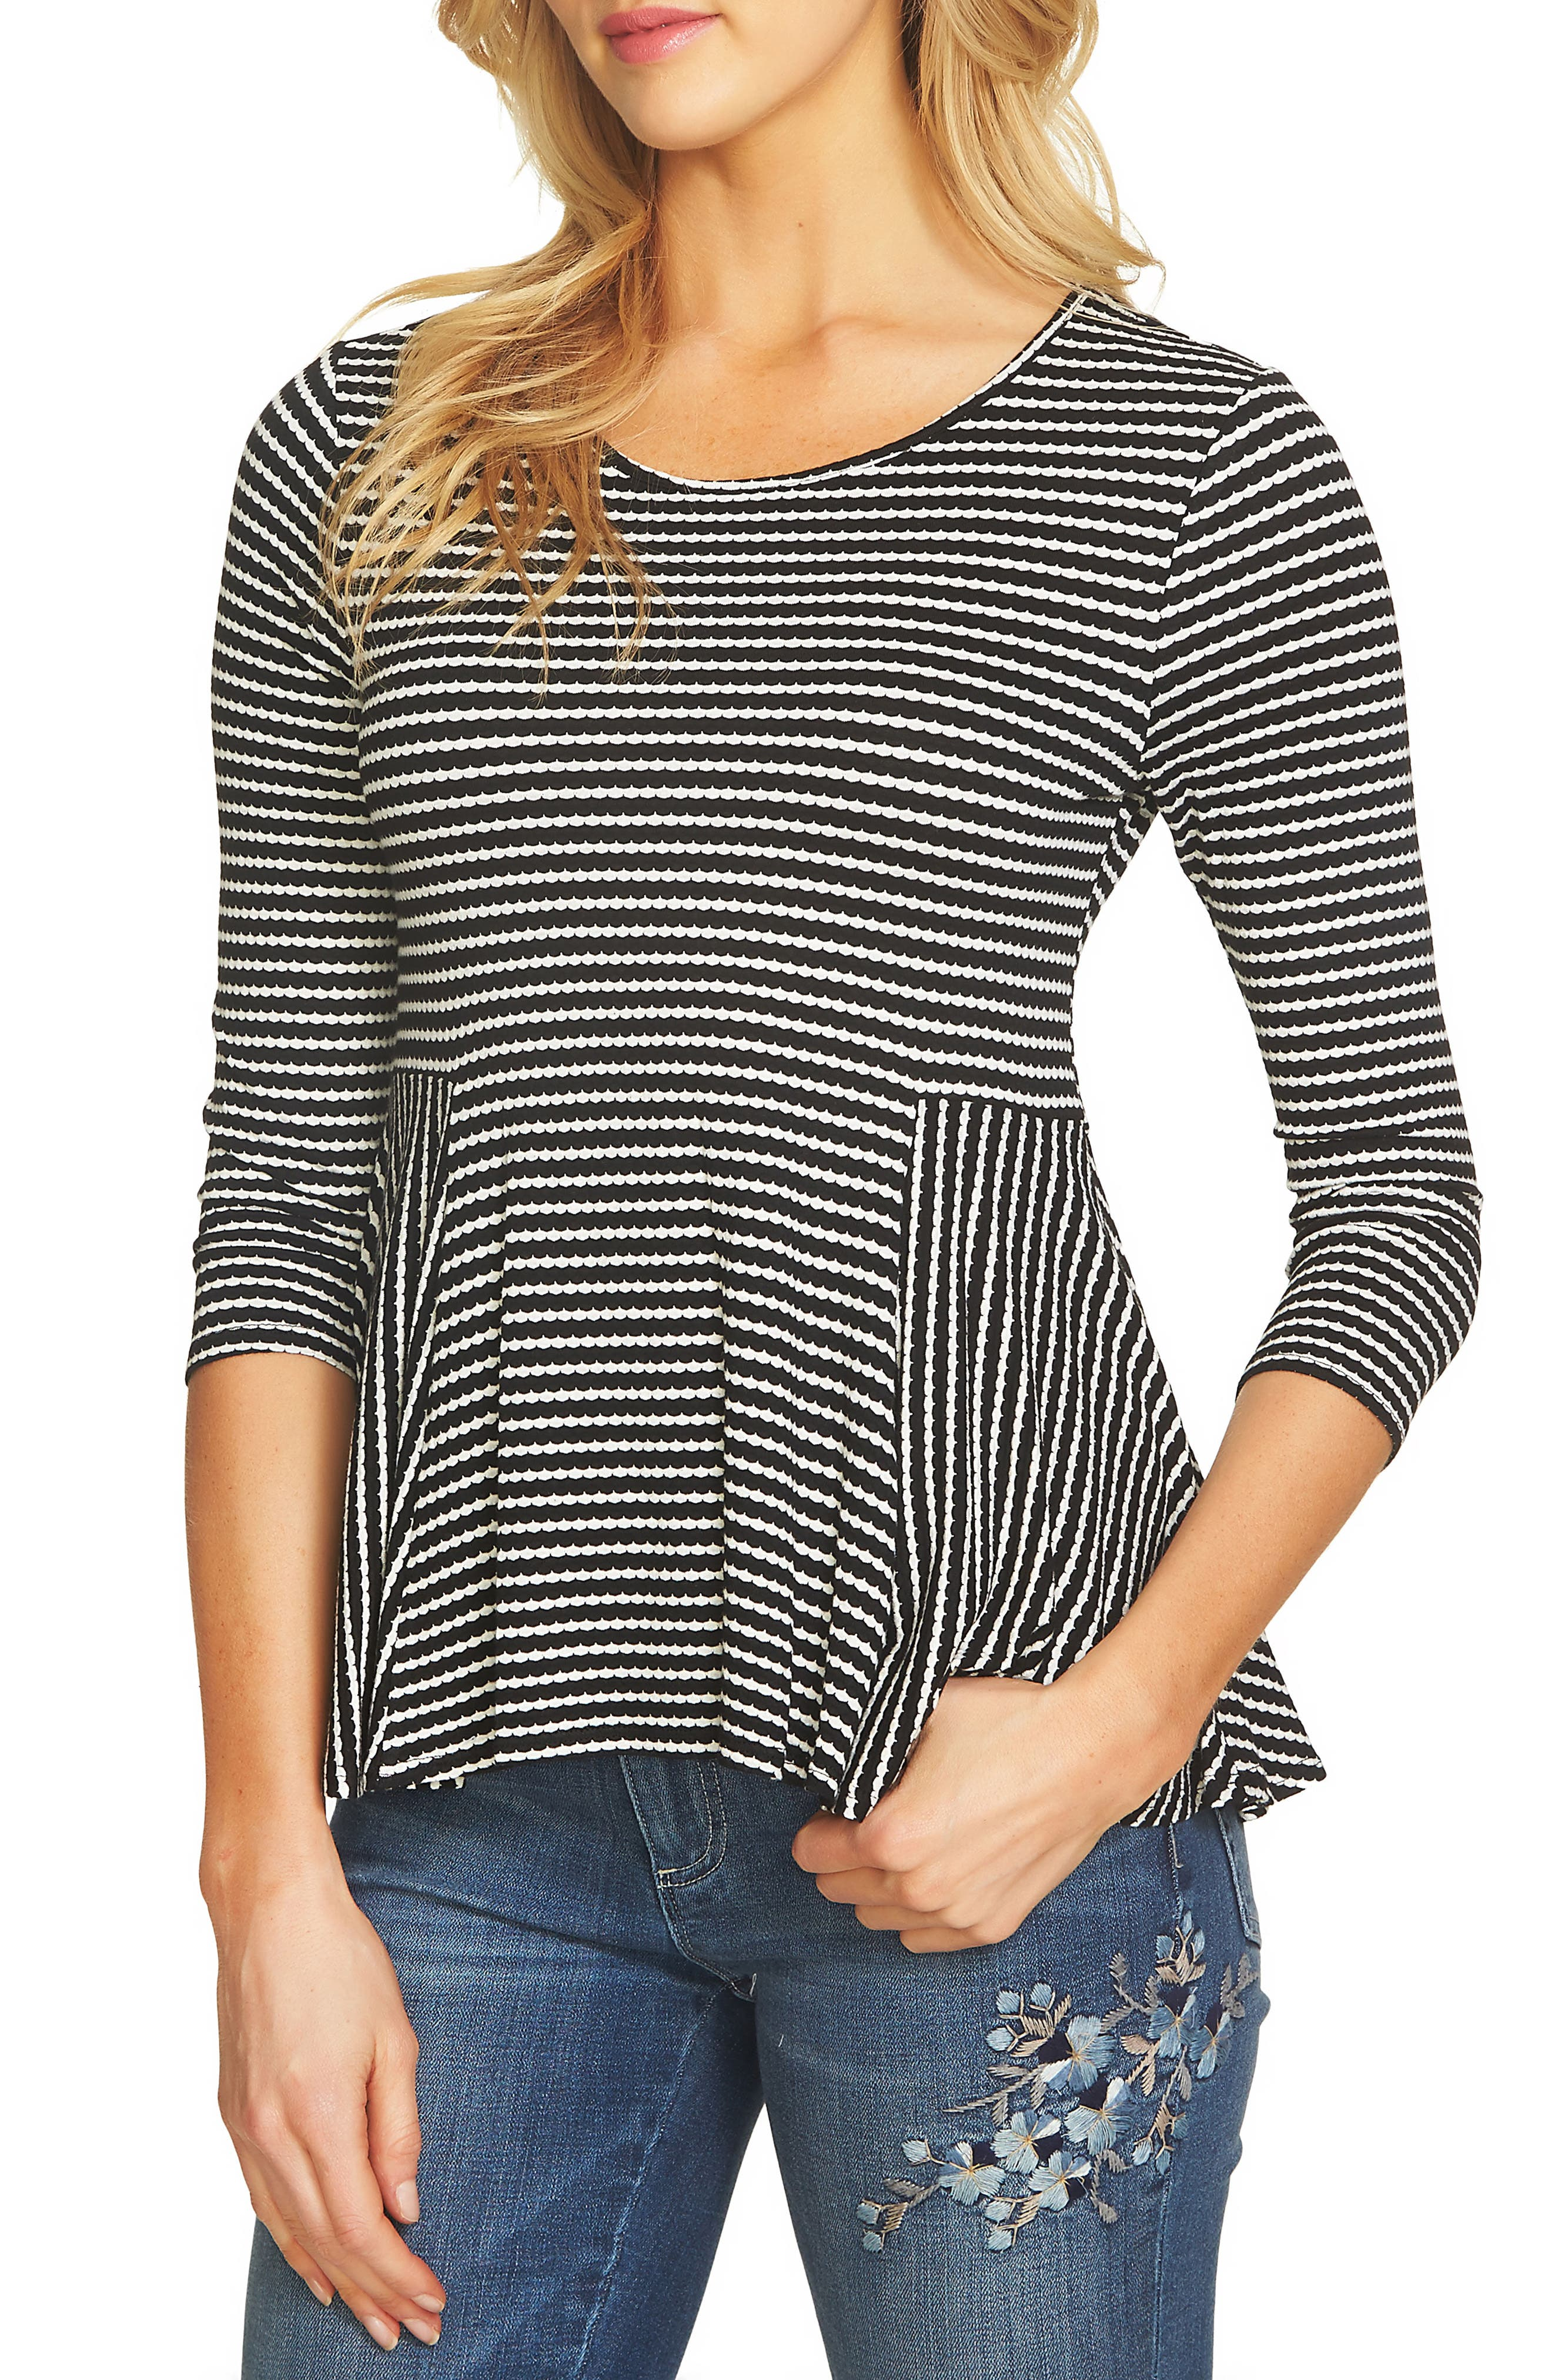 Alternate Image 1 Selected - CeCe Scalloped Knit Swing Top